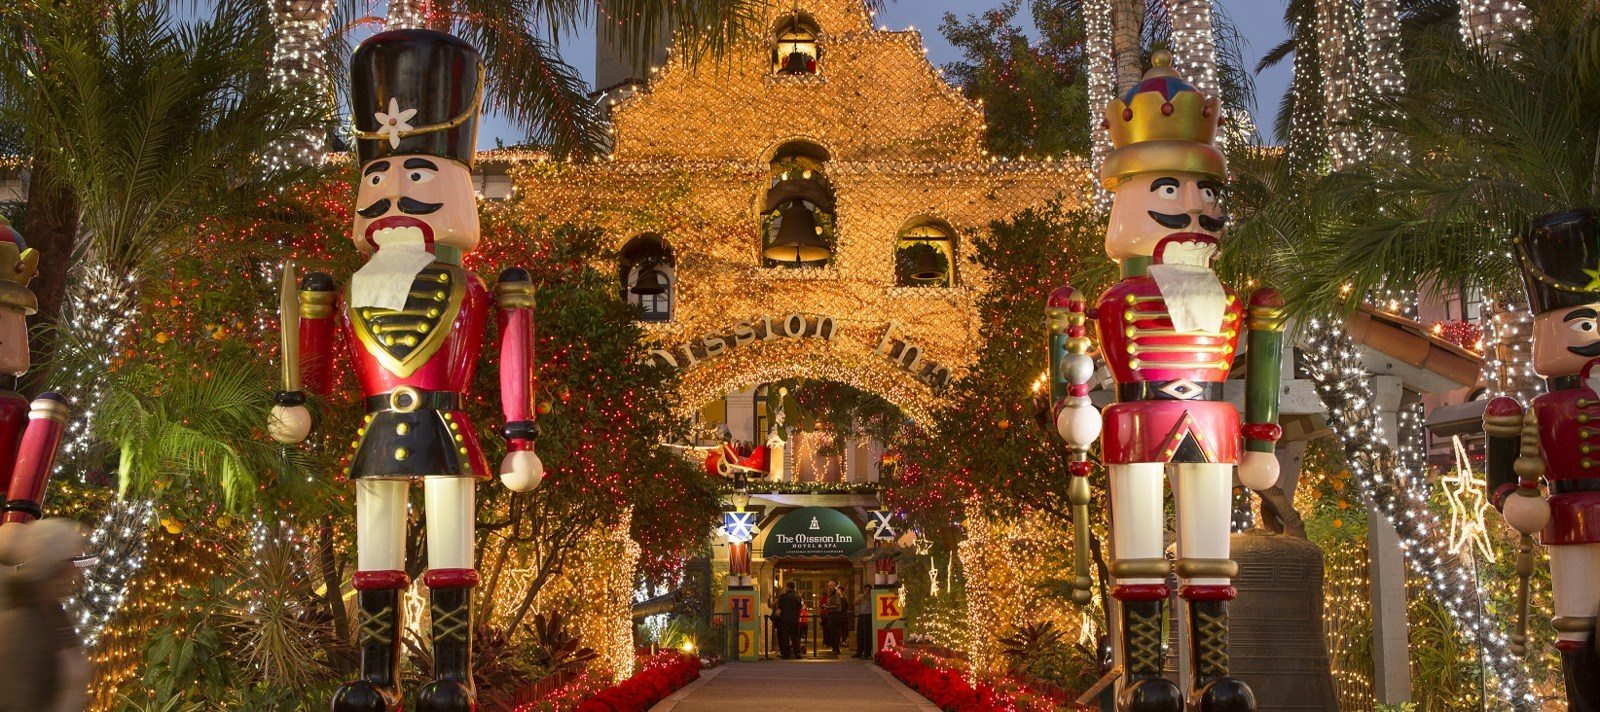 Festival Of Lights At The Riverside Mission Inn 5 Things To Know